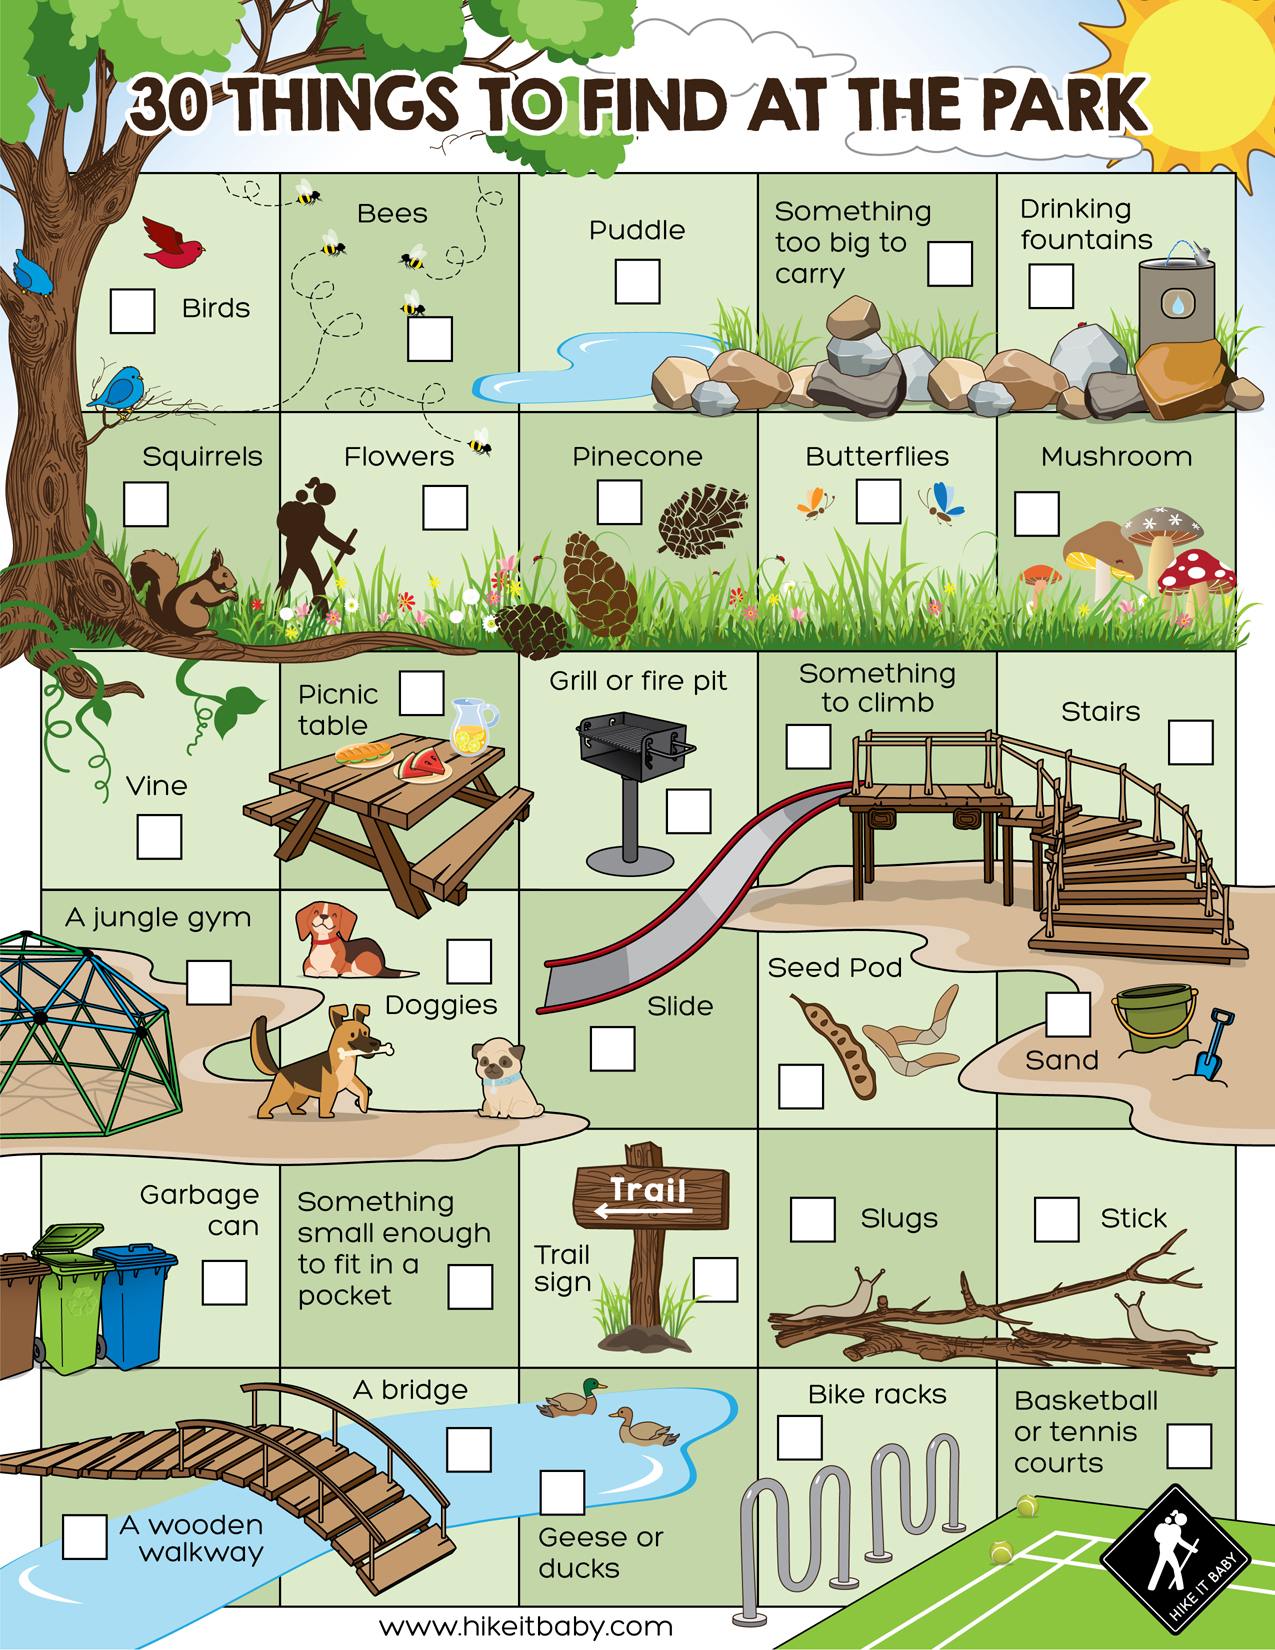 30 things to find at the park activity sheet download